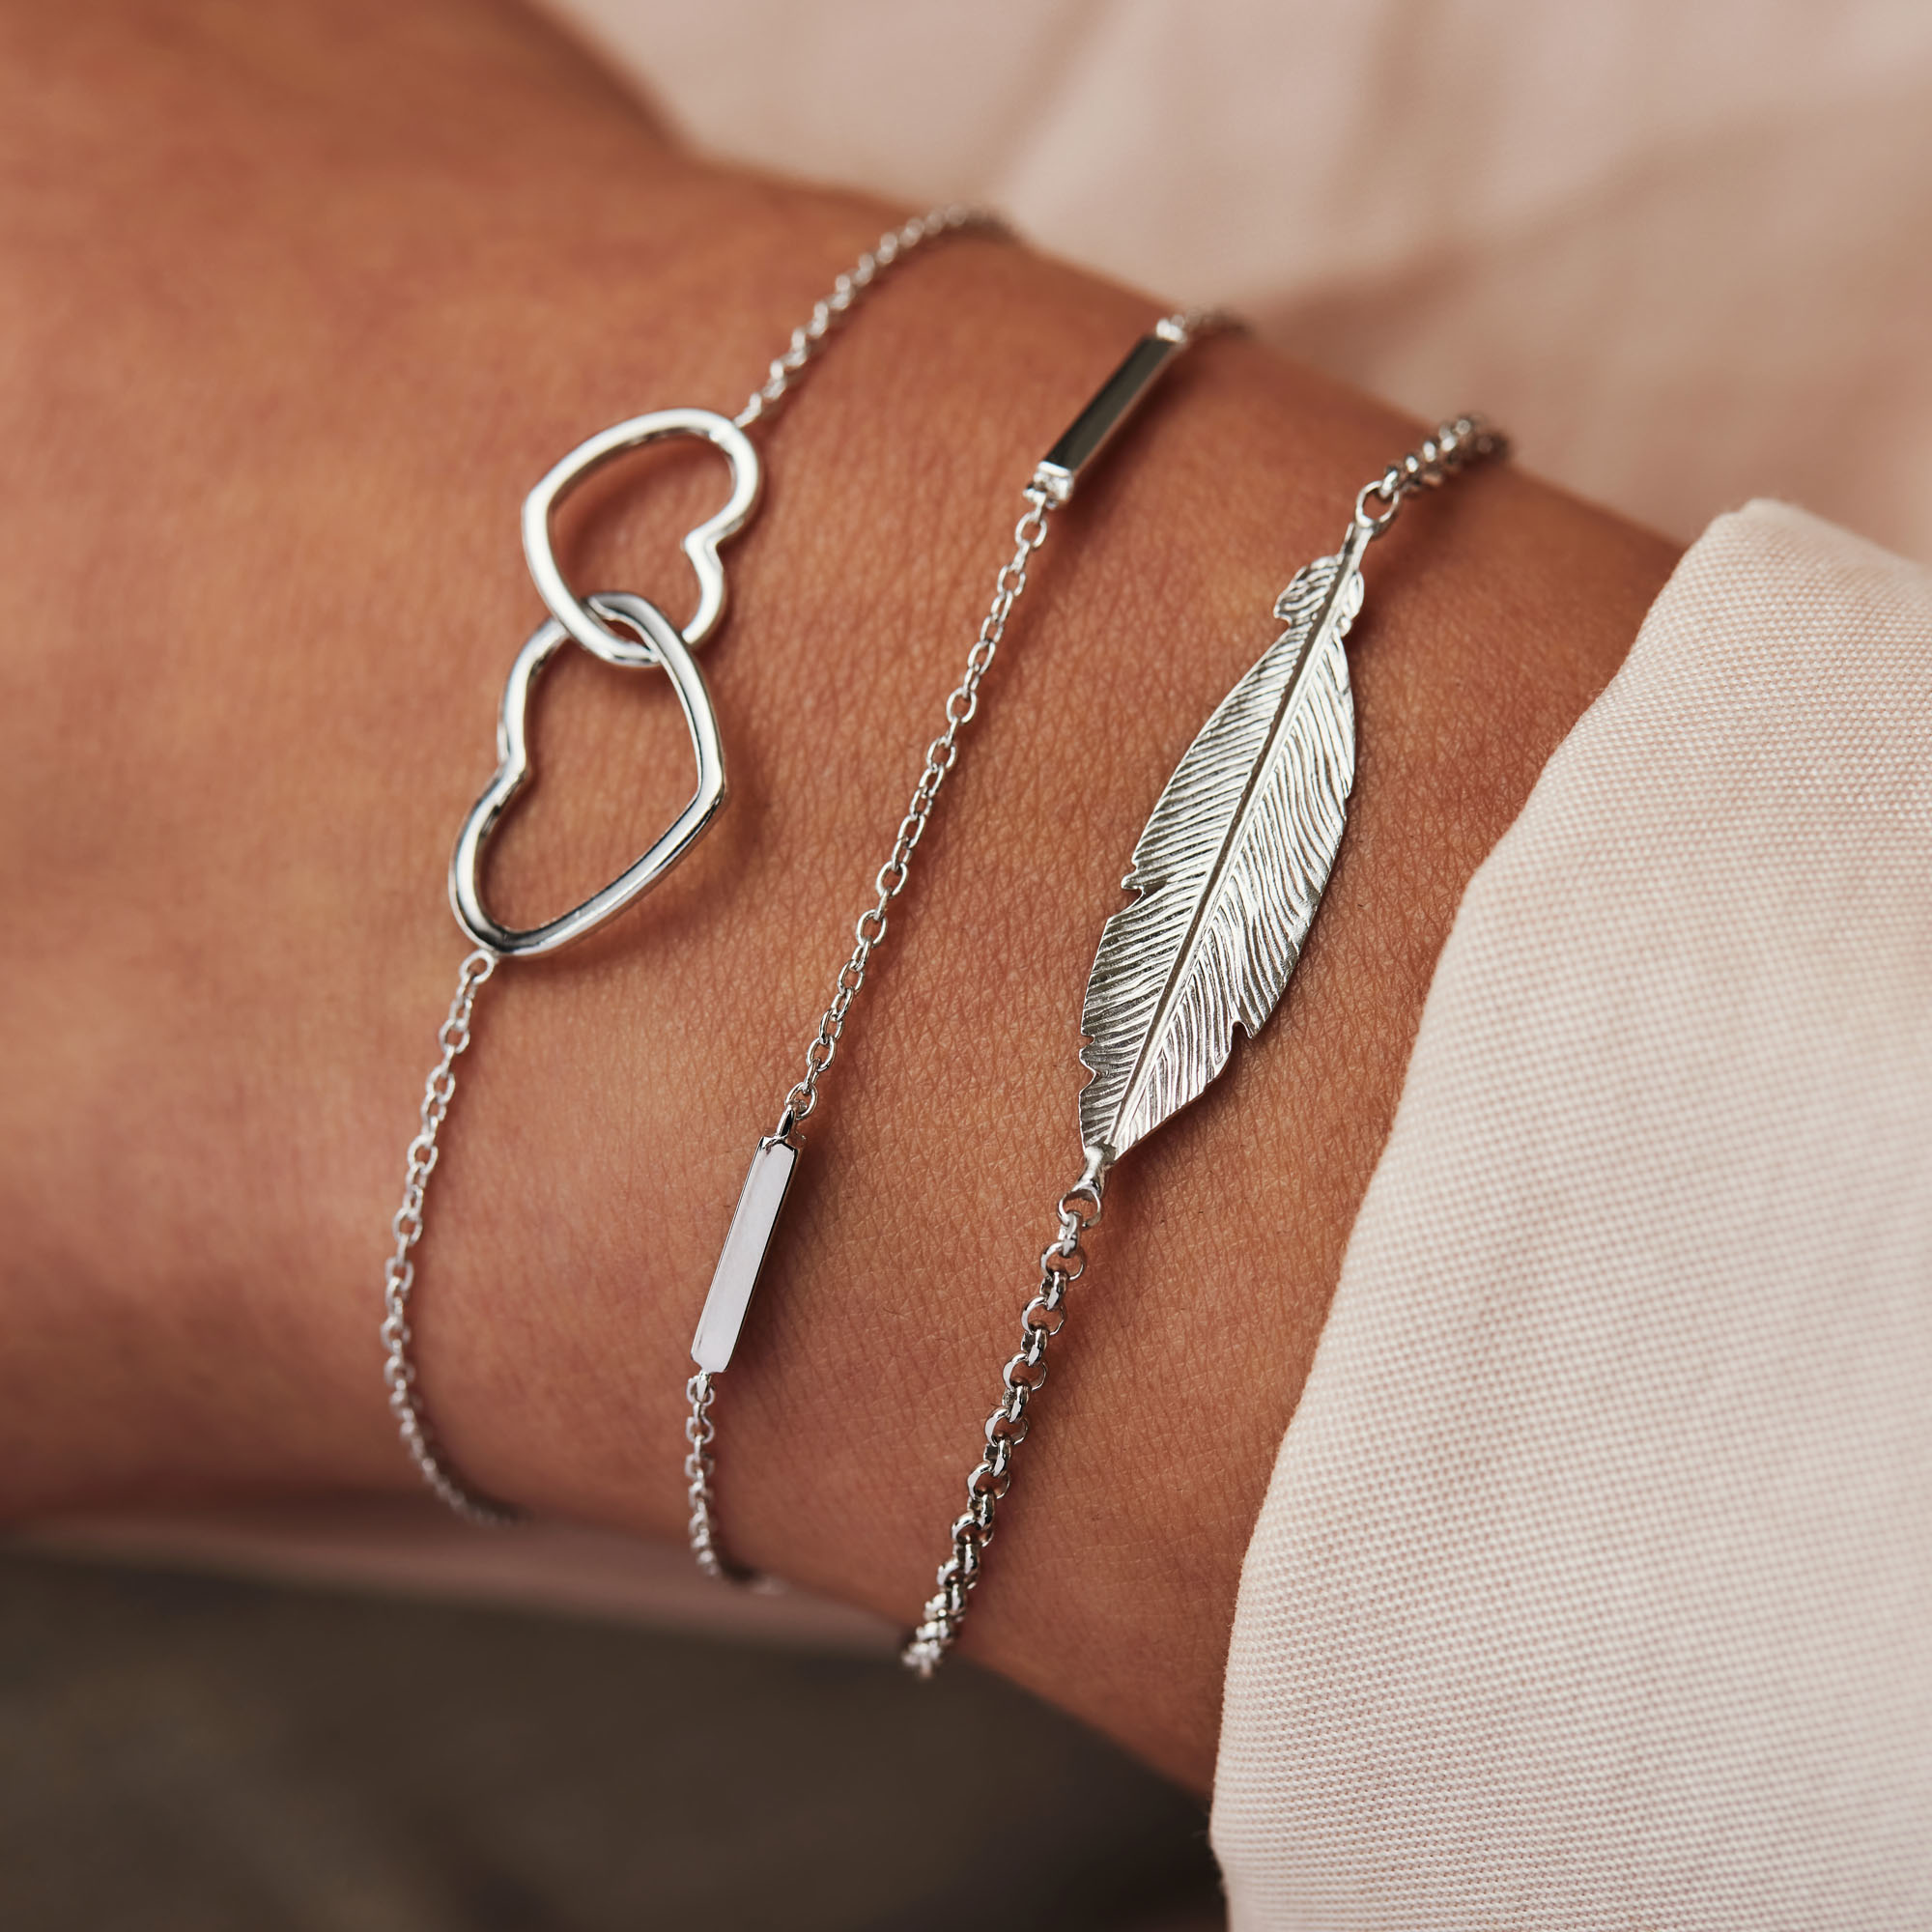 Selected Jewels Julie Lucie 925 sterling zilveren armband met veertje